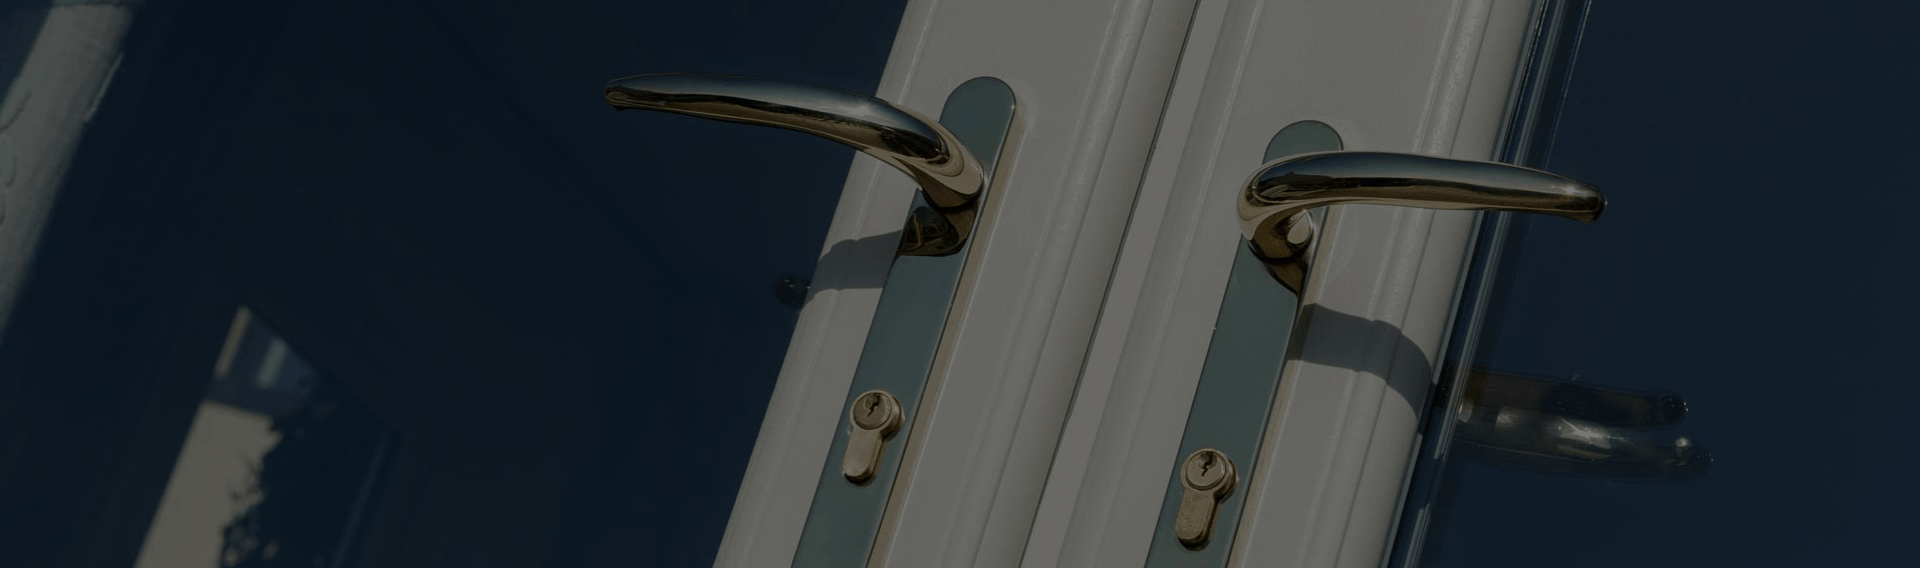 Upvc Door & Window Locks Repaired and Replaced - Horsham, Crawley